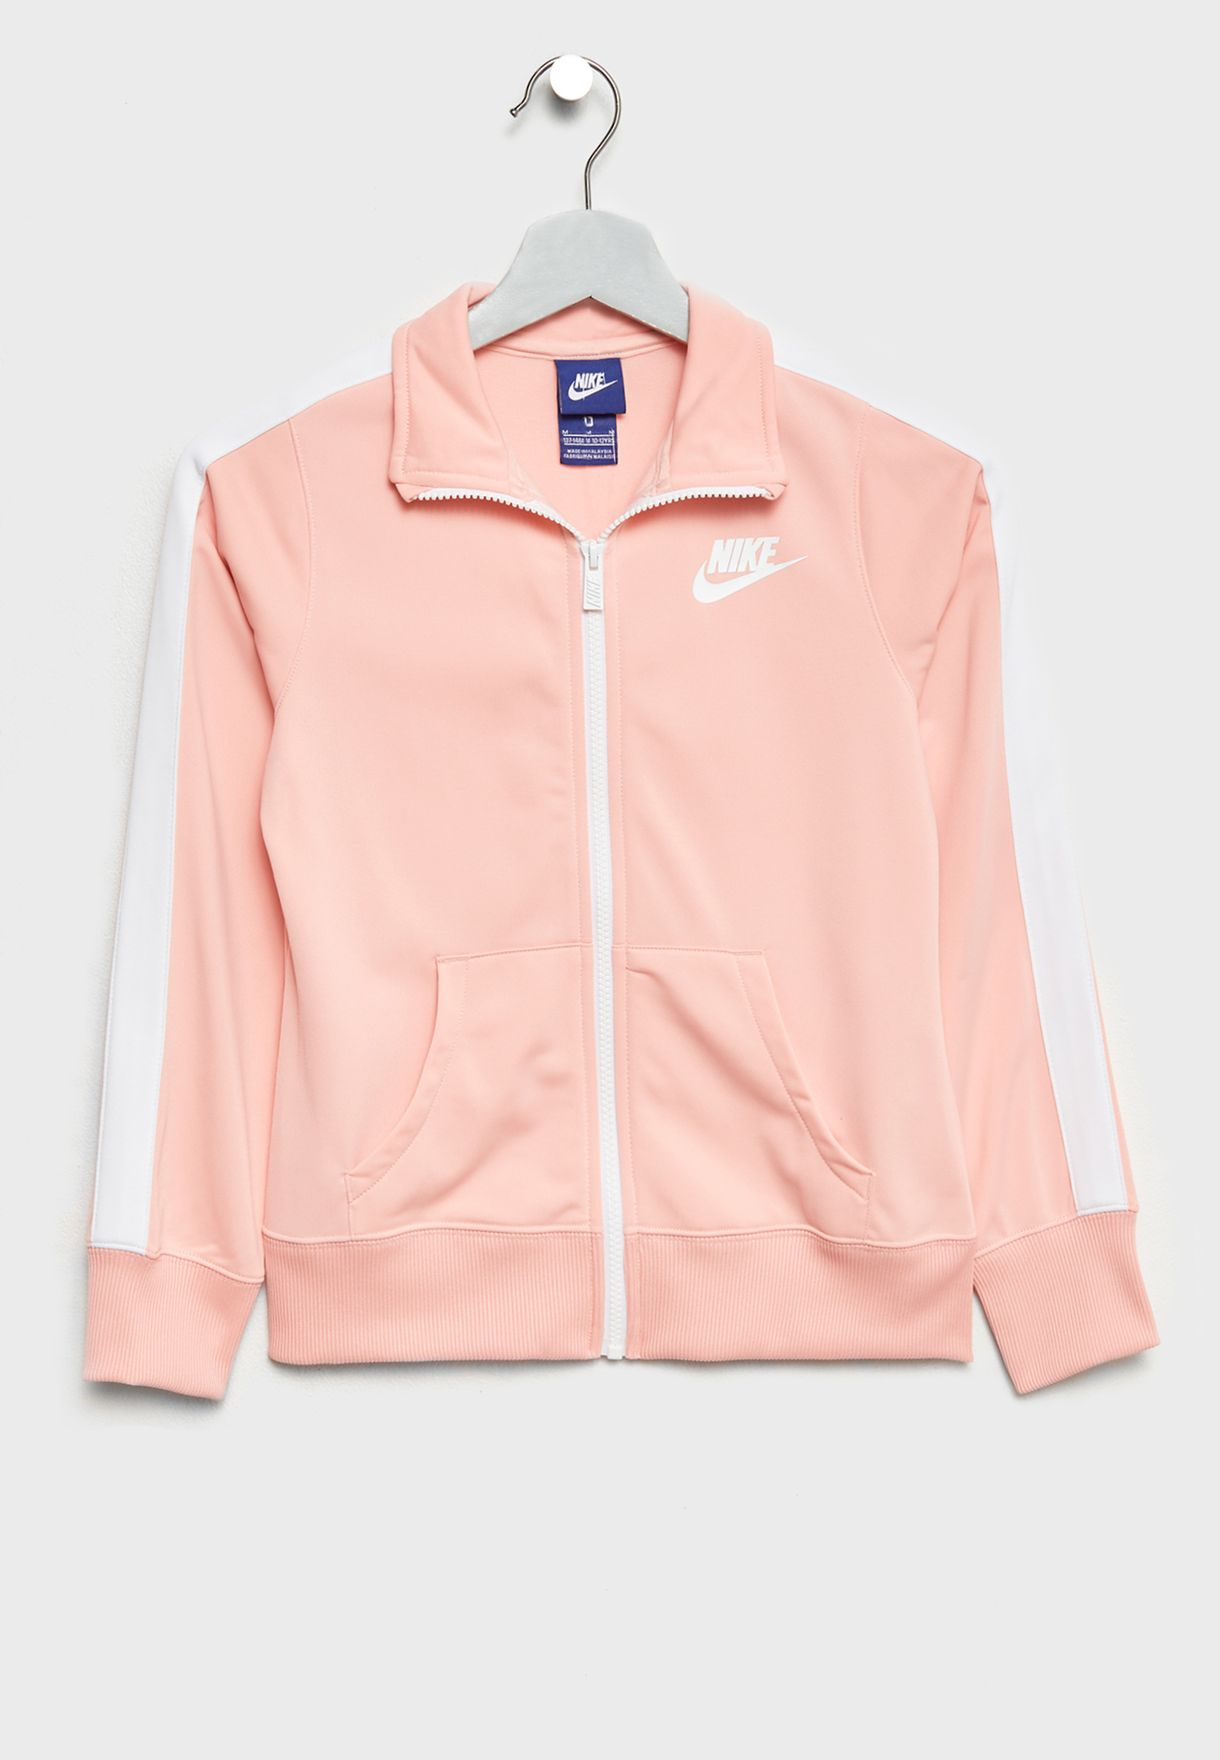 fbfcc68a8 Shop Nike pink Youth Logo Tracksuit 806395-697 for Kids in Qatar ...